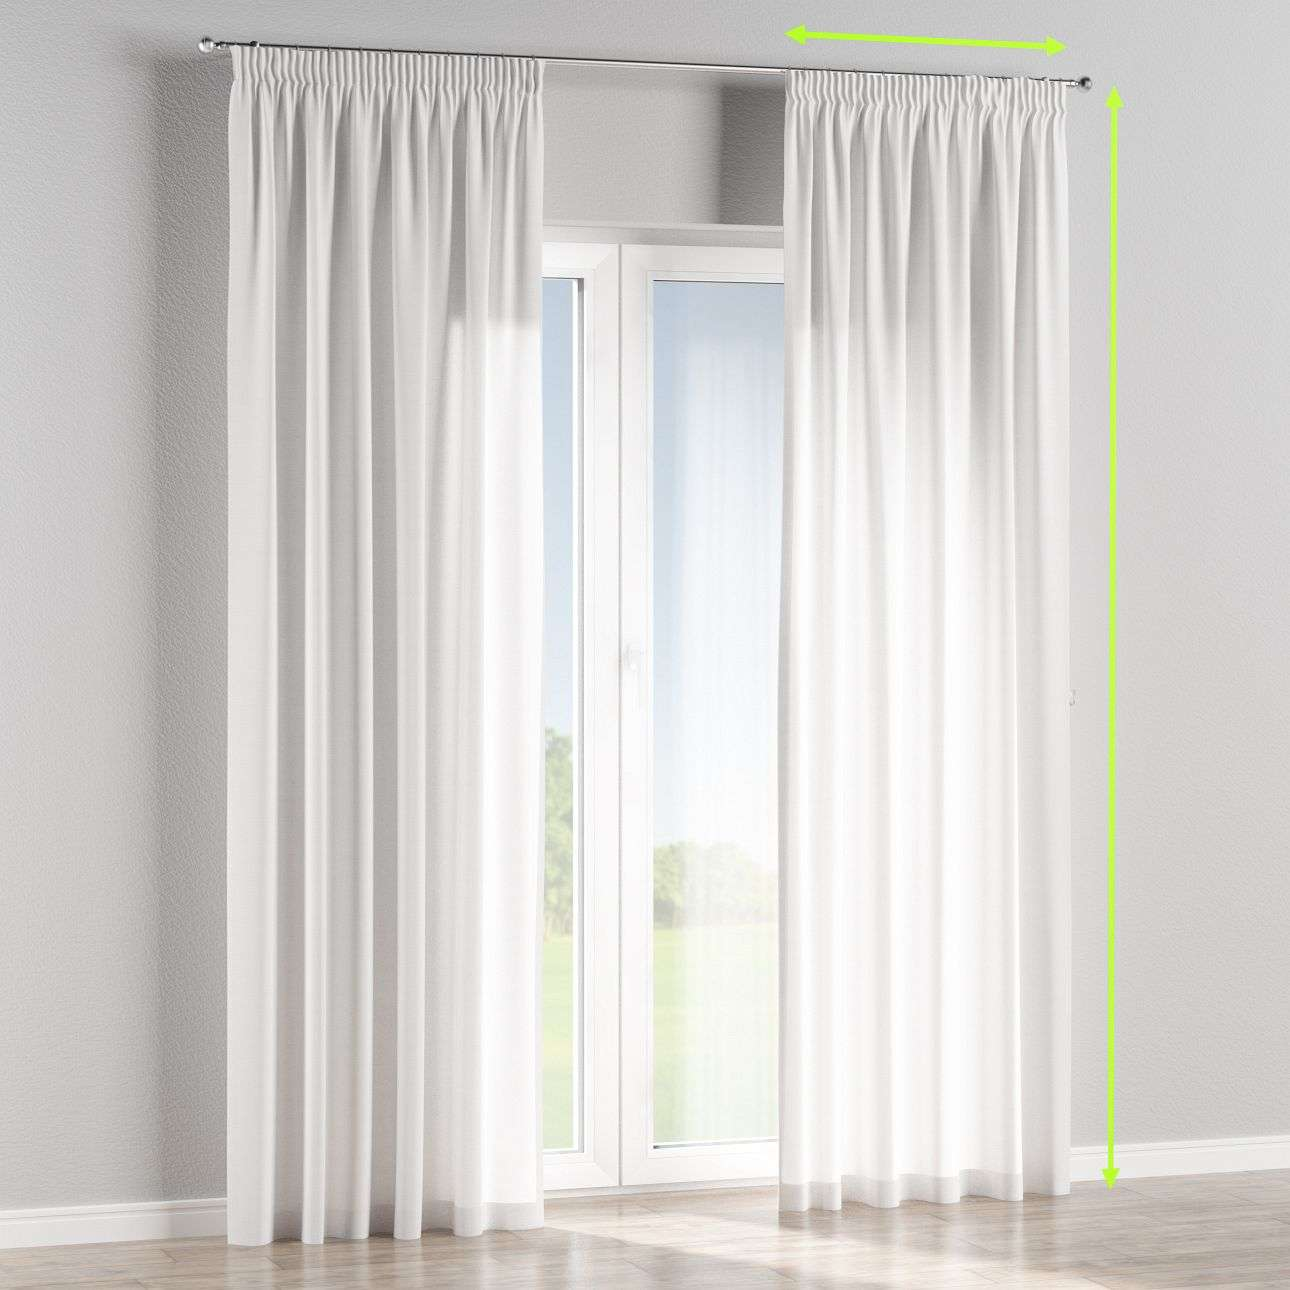 Pencil pleat curtain in collection Jupiter, fabric: 127-01